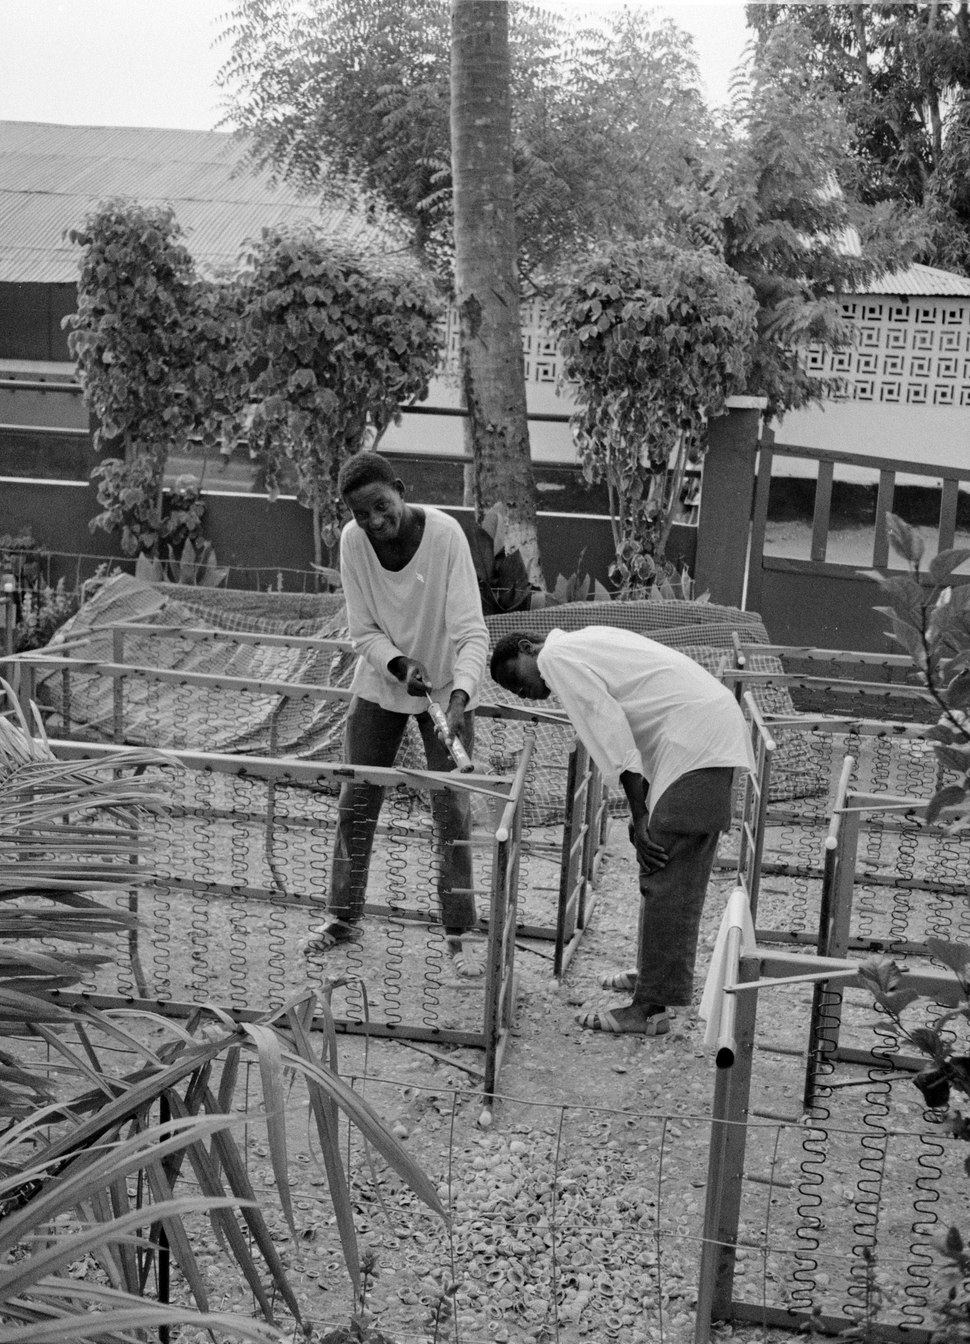 ASC Leiden - Coutinho Collection - 27 09 - Ziguinchor hospital, Senegal - Cleaning the hospital and the hospital beds - 1973